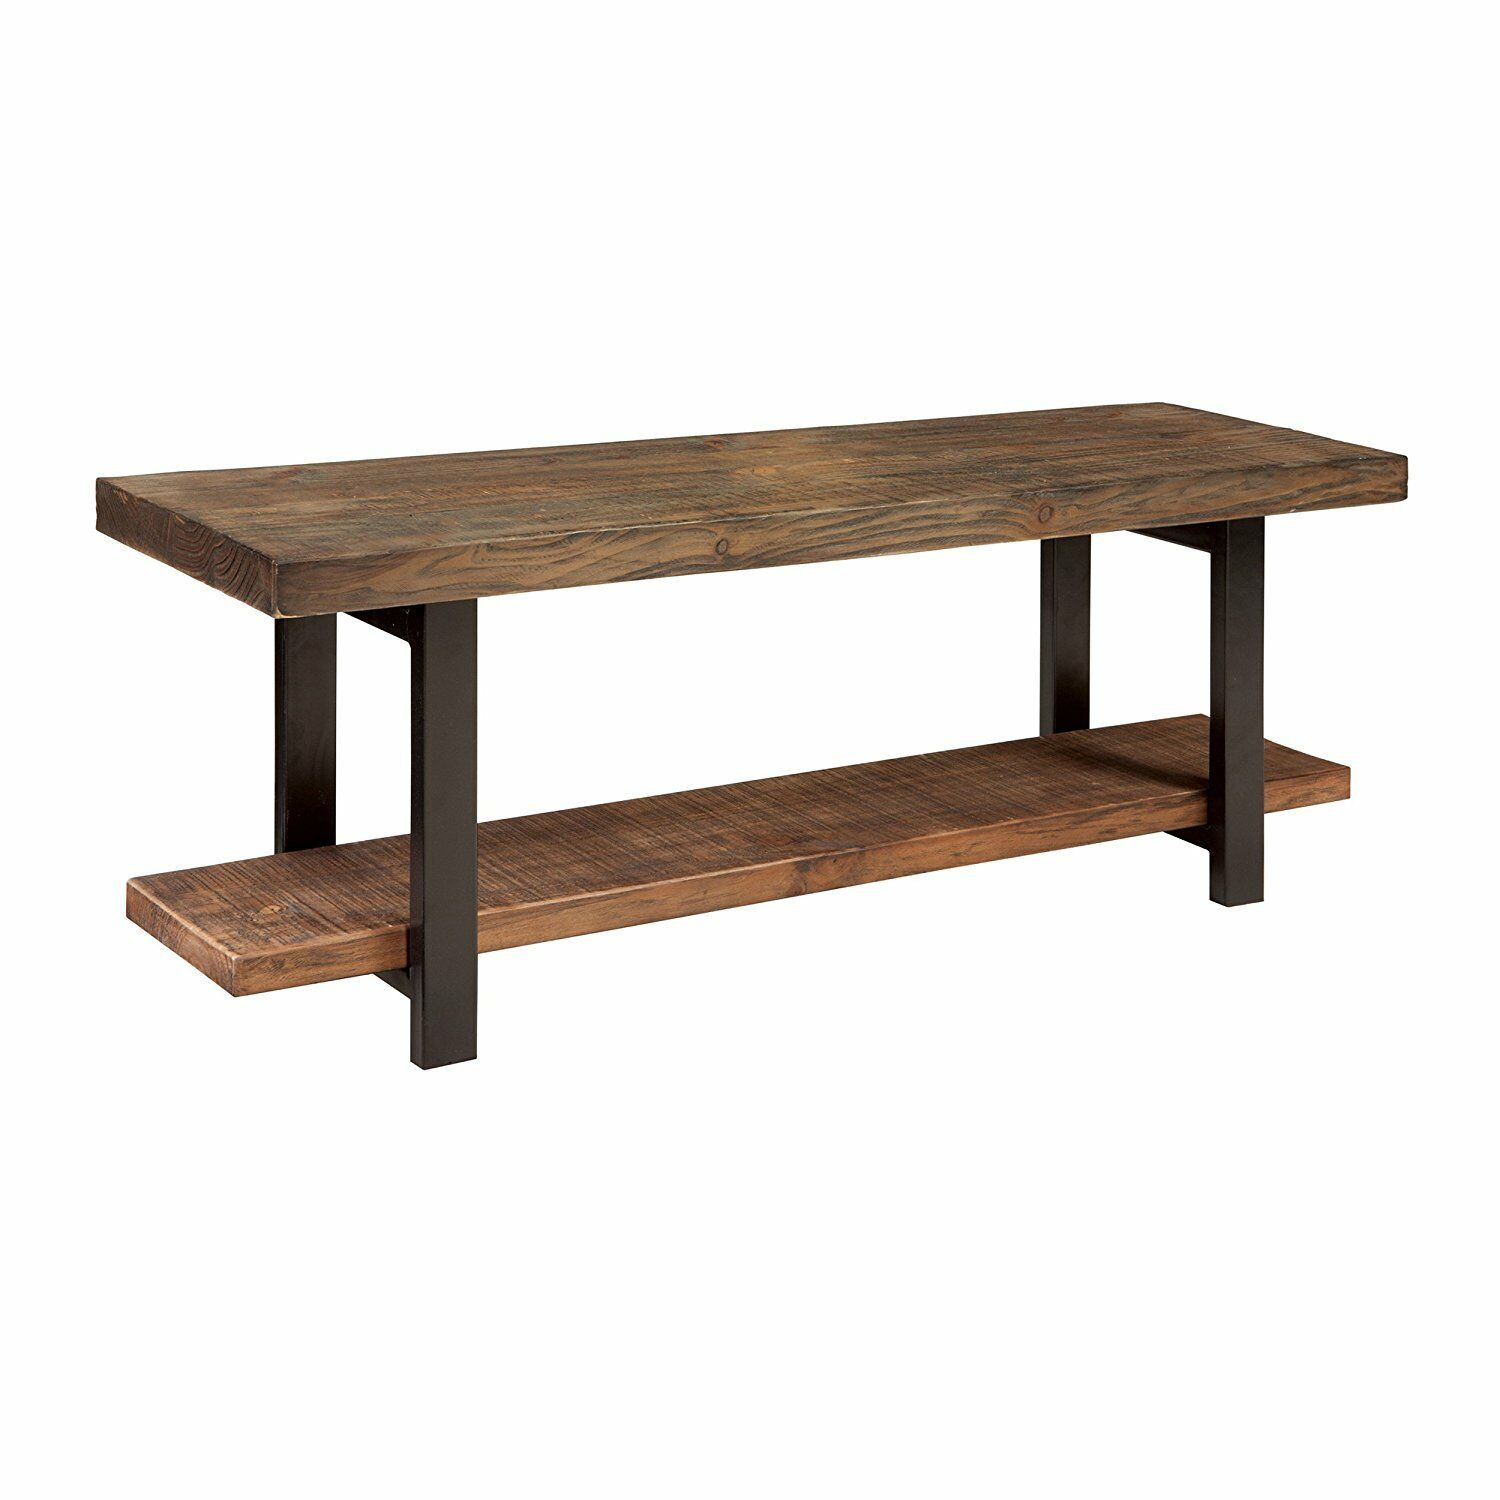 Rustic Natural Bench Wood Seat Metal Legs Brown Entry Way Shoe Storage Shelf New For Sale Online